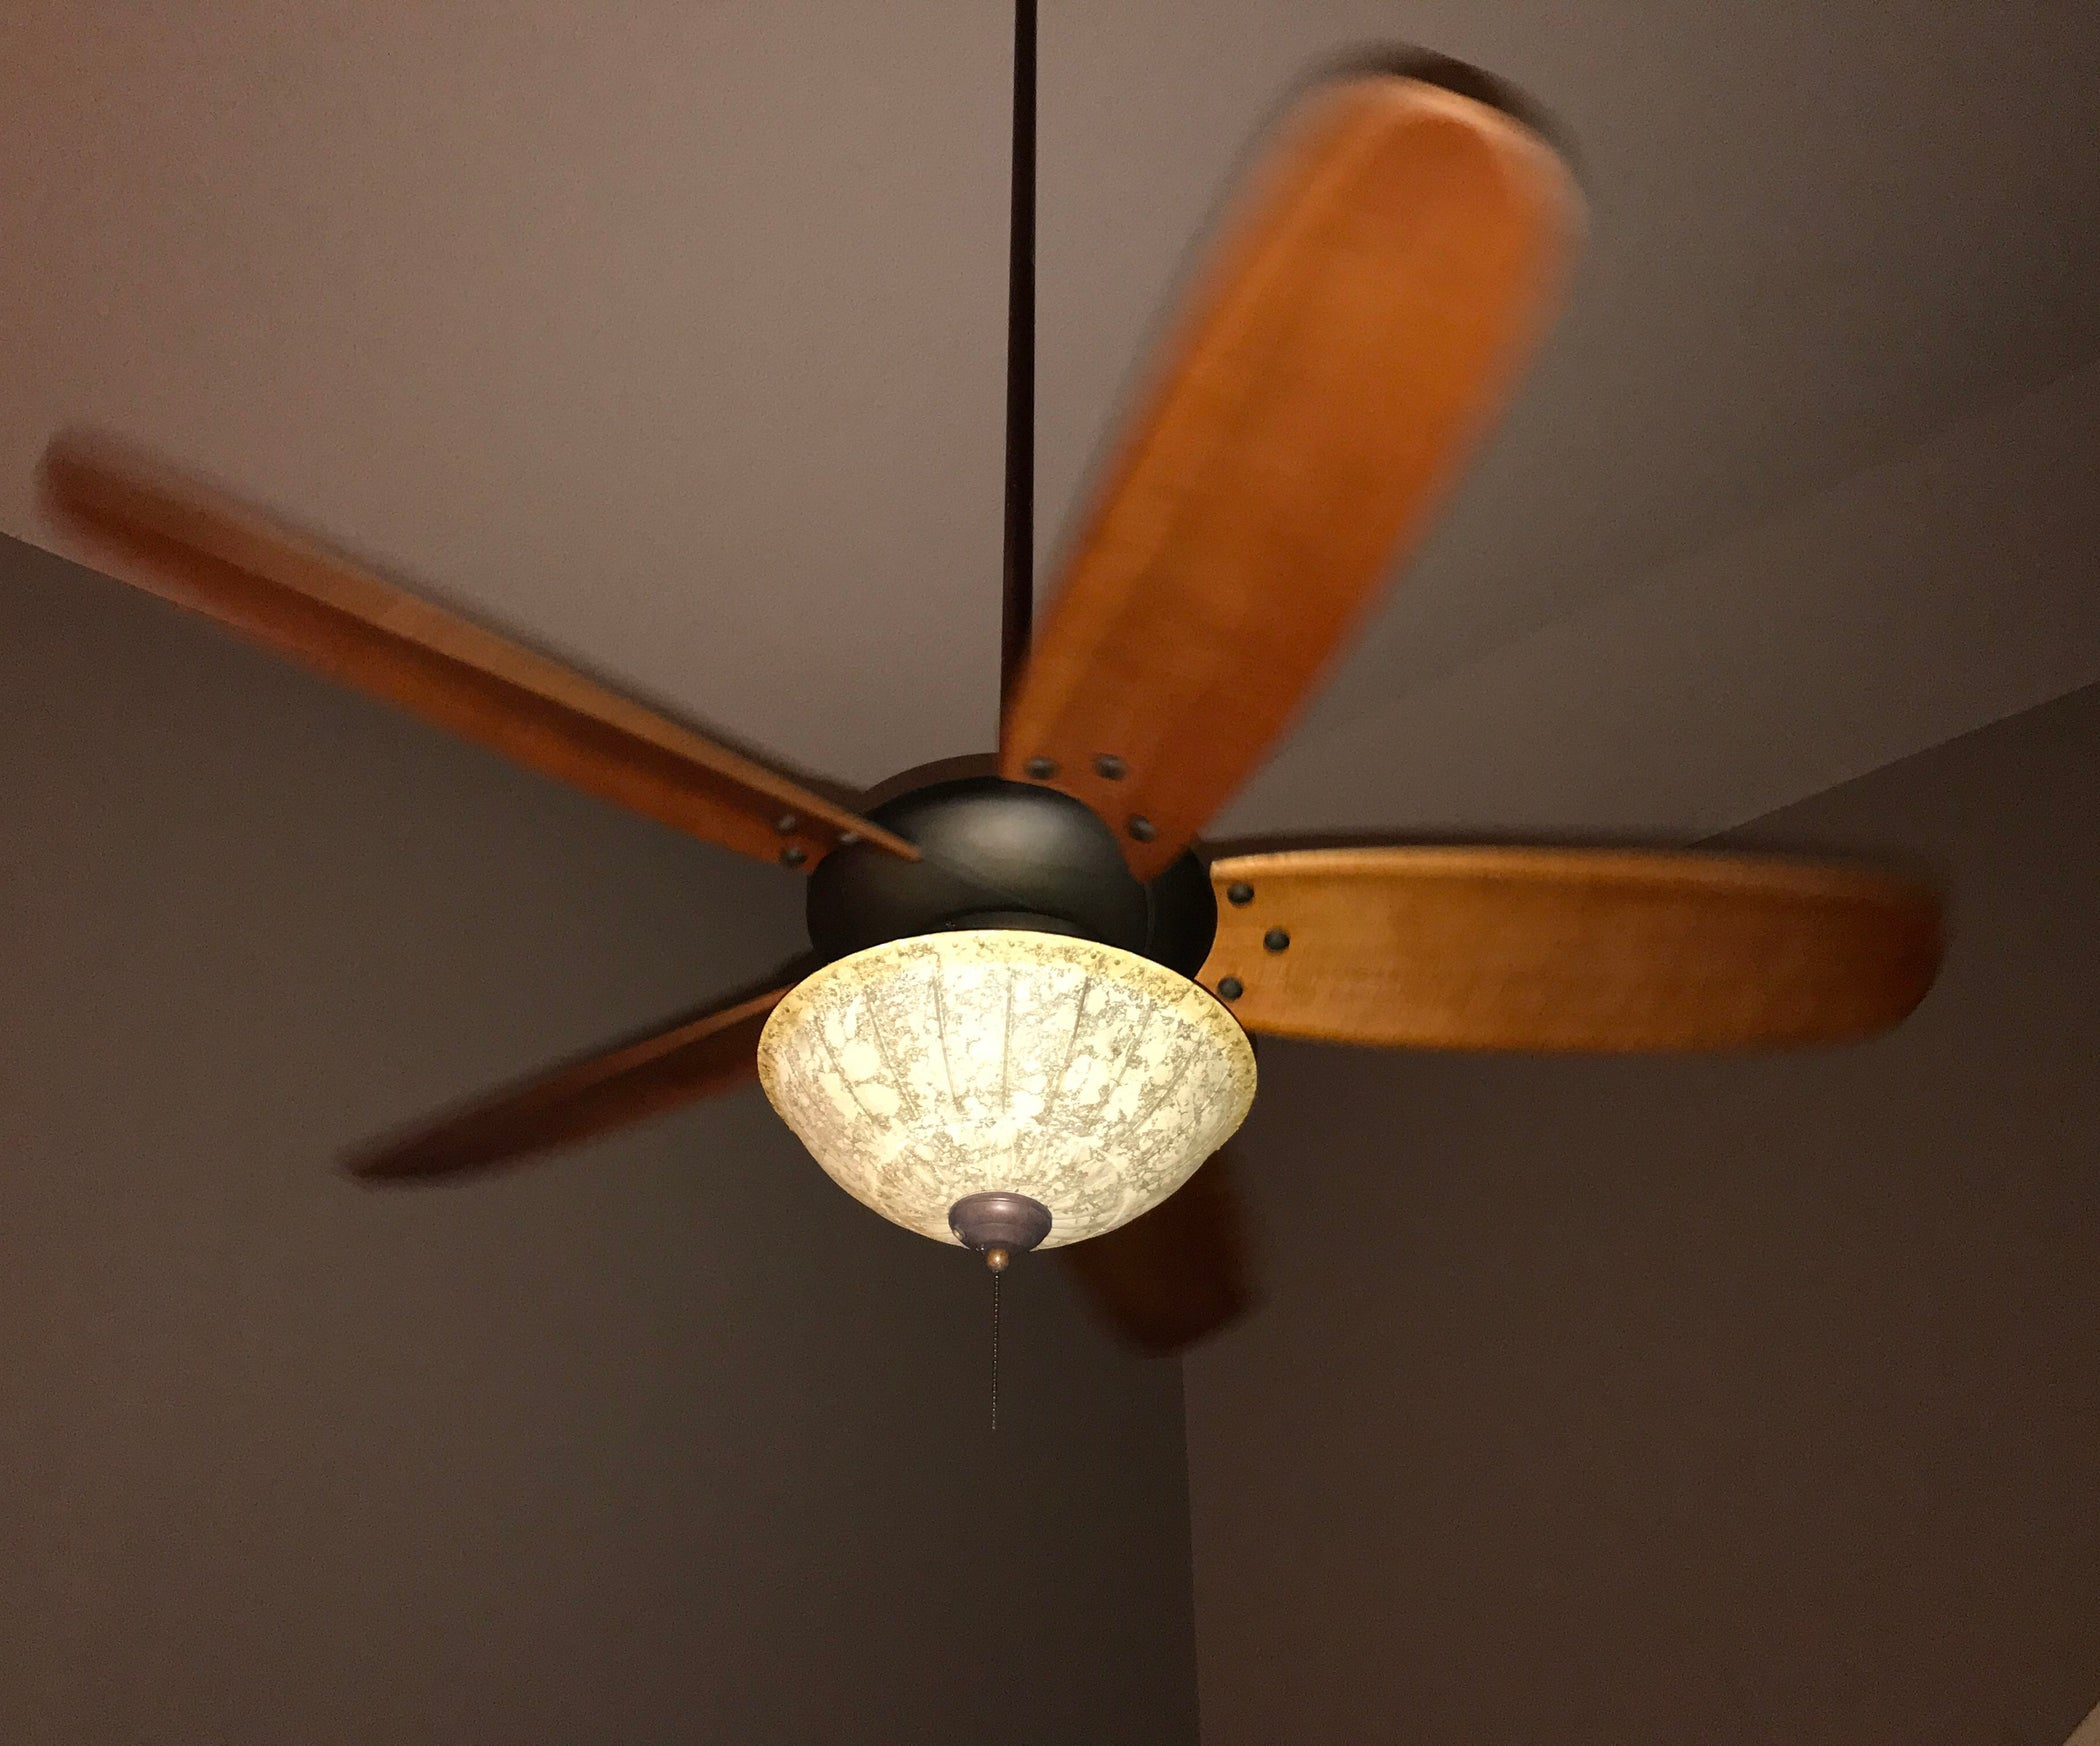 Hampton Bay Ceiling Fan Lights Wont Work Shelly Lighting